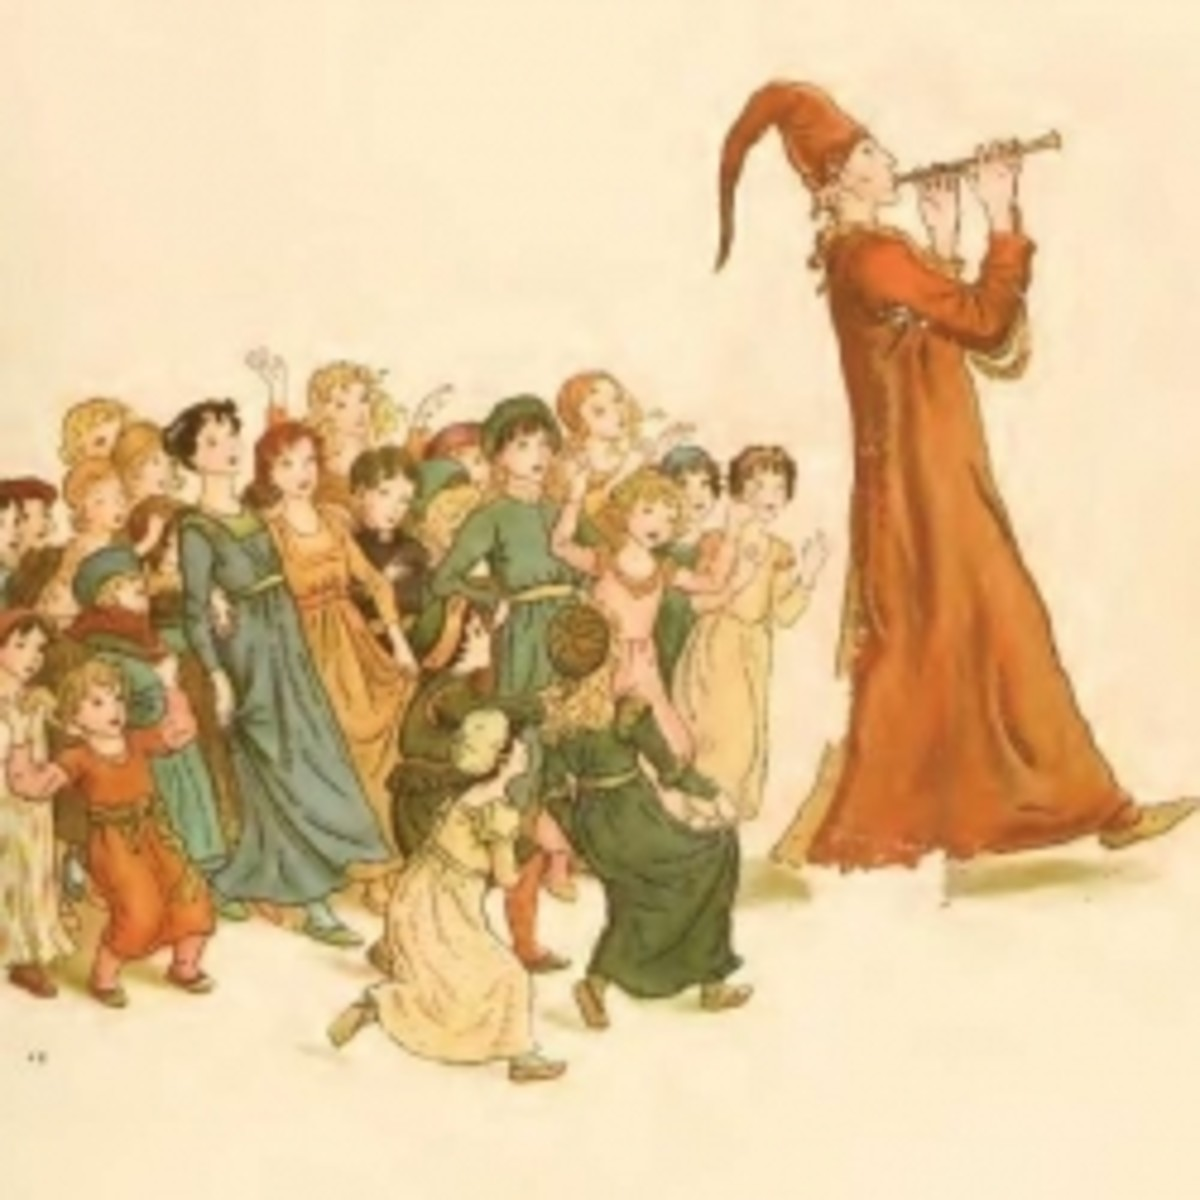 Kate Greenaway's illustration of Pied Piper of Hamelin